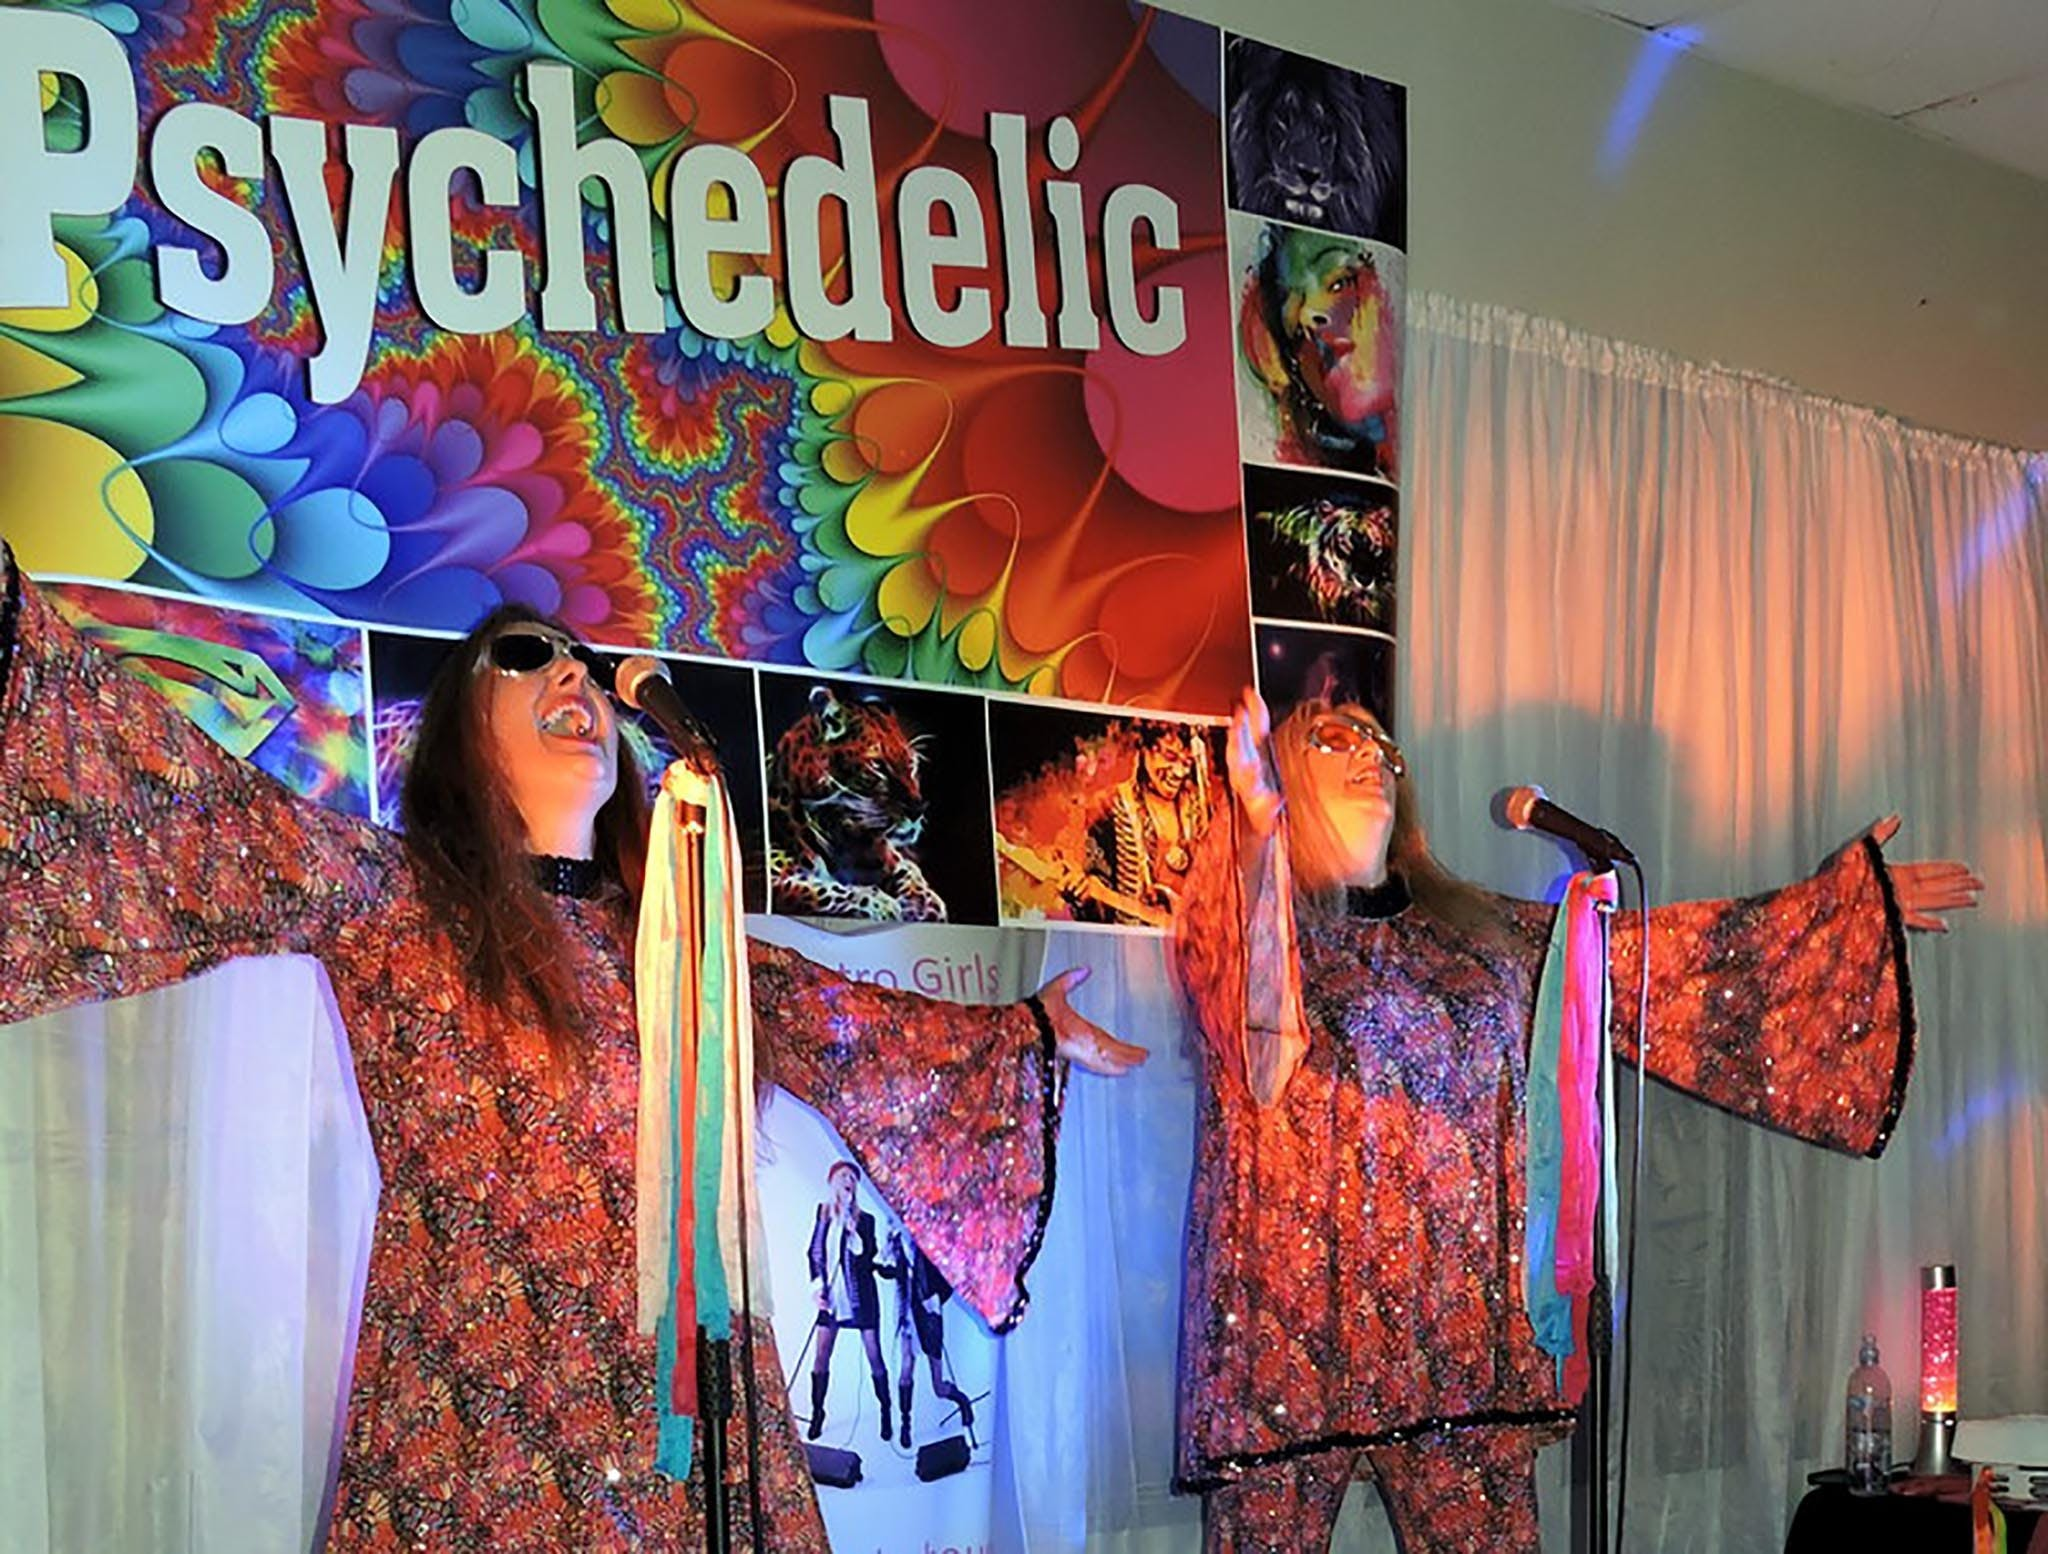 Psychedelic 70s Show The Retro Girls - Victoria Tourism